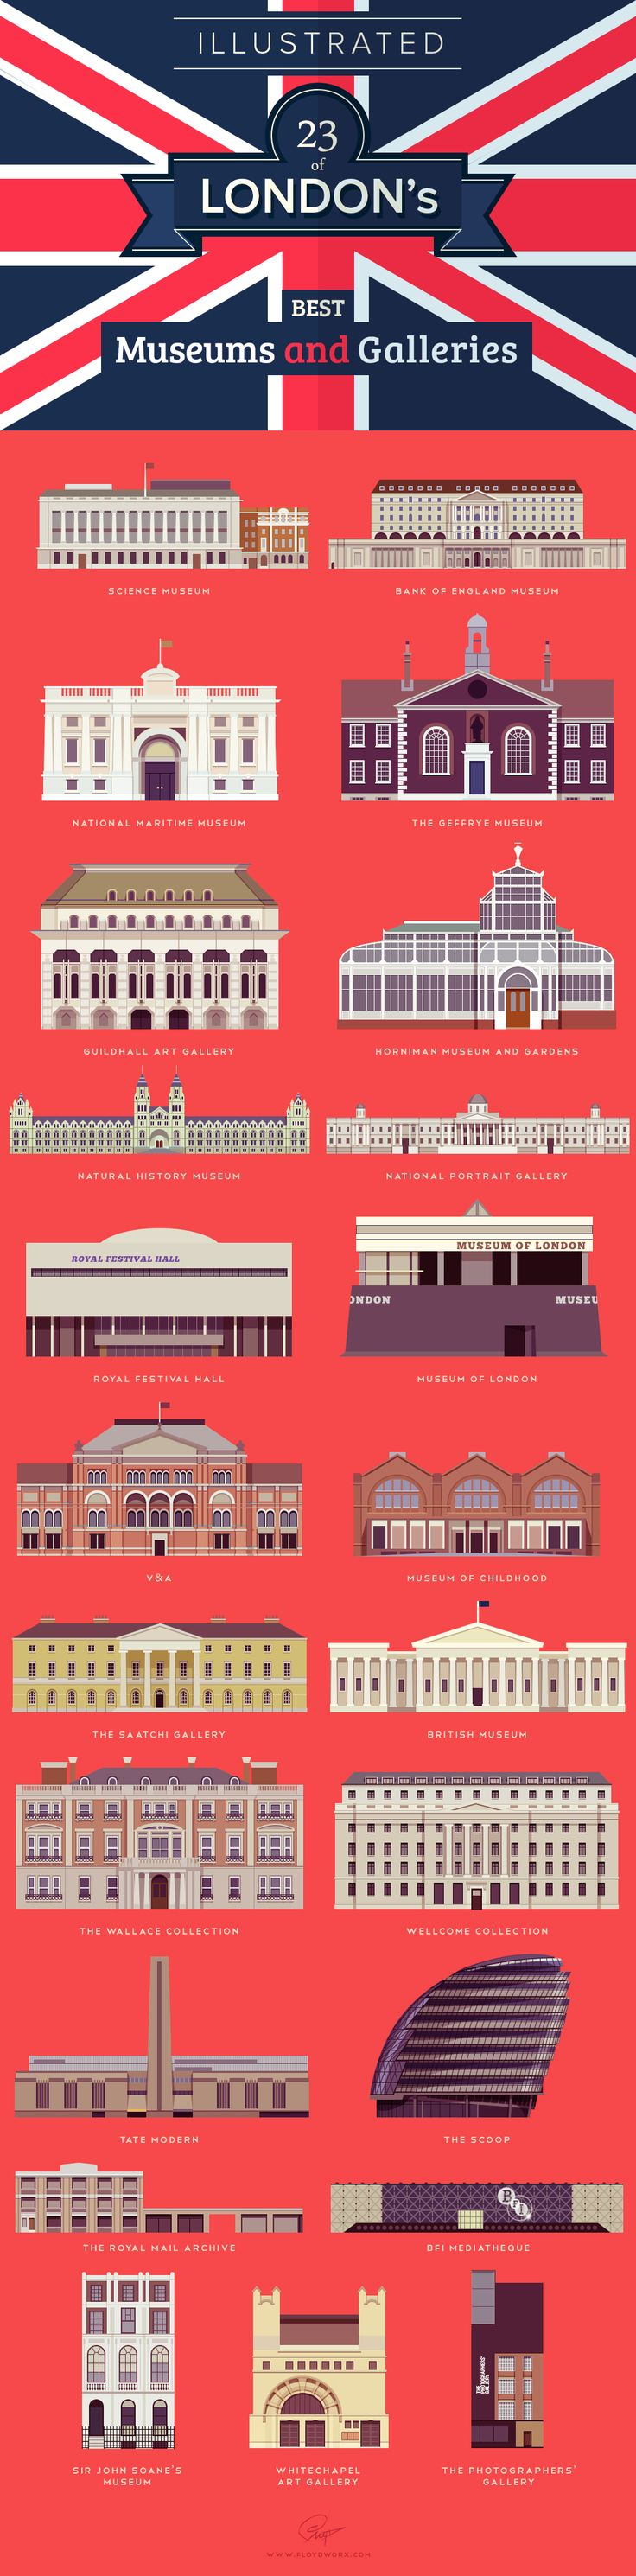 London's free museums and galleries Infographic